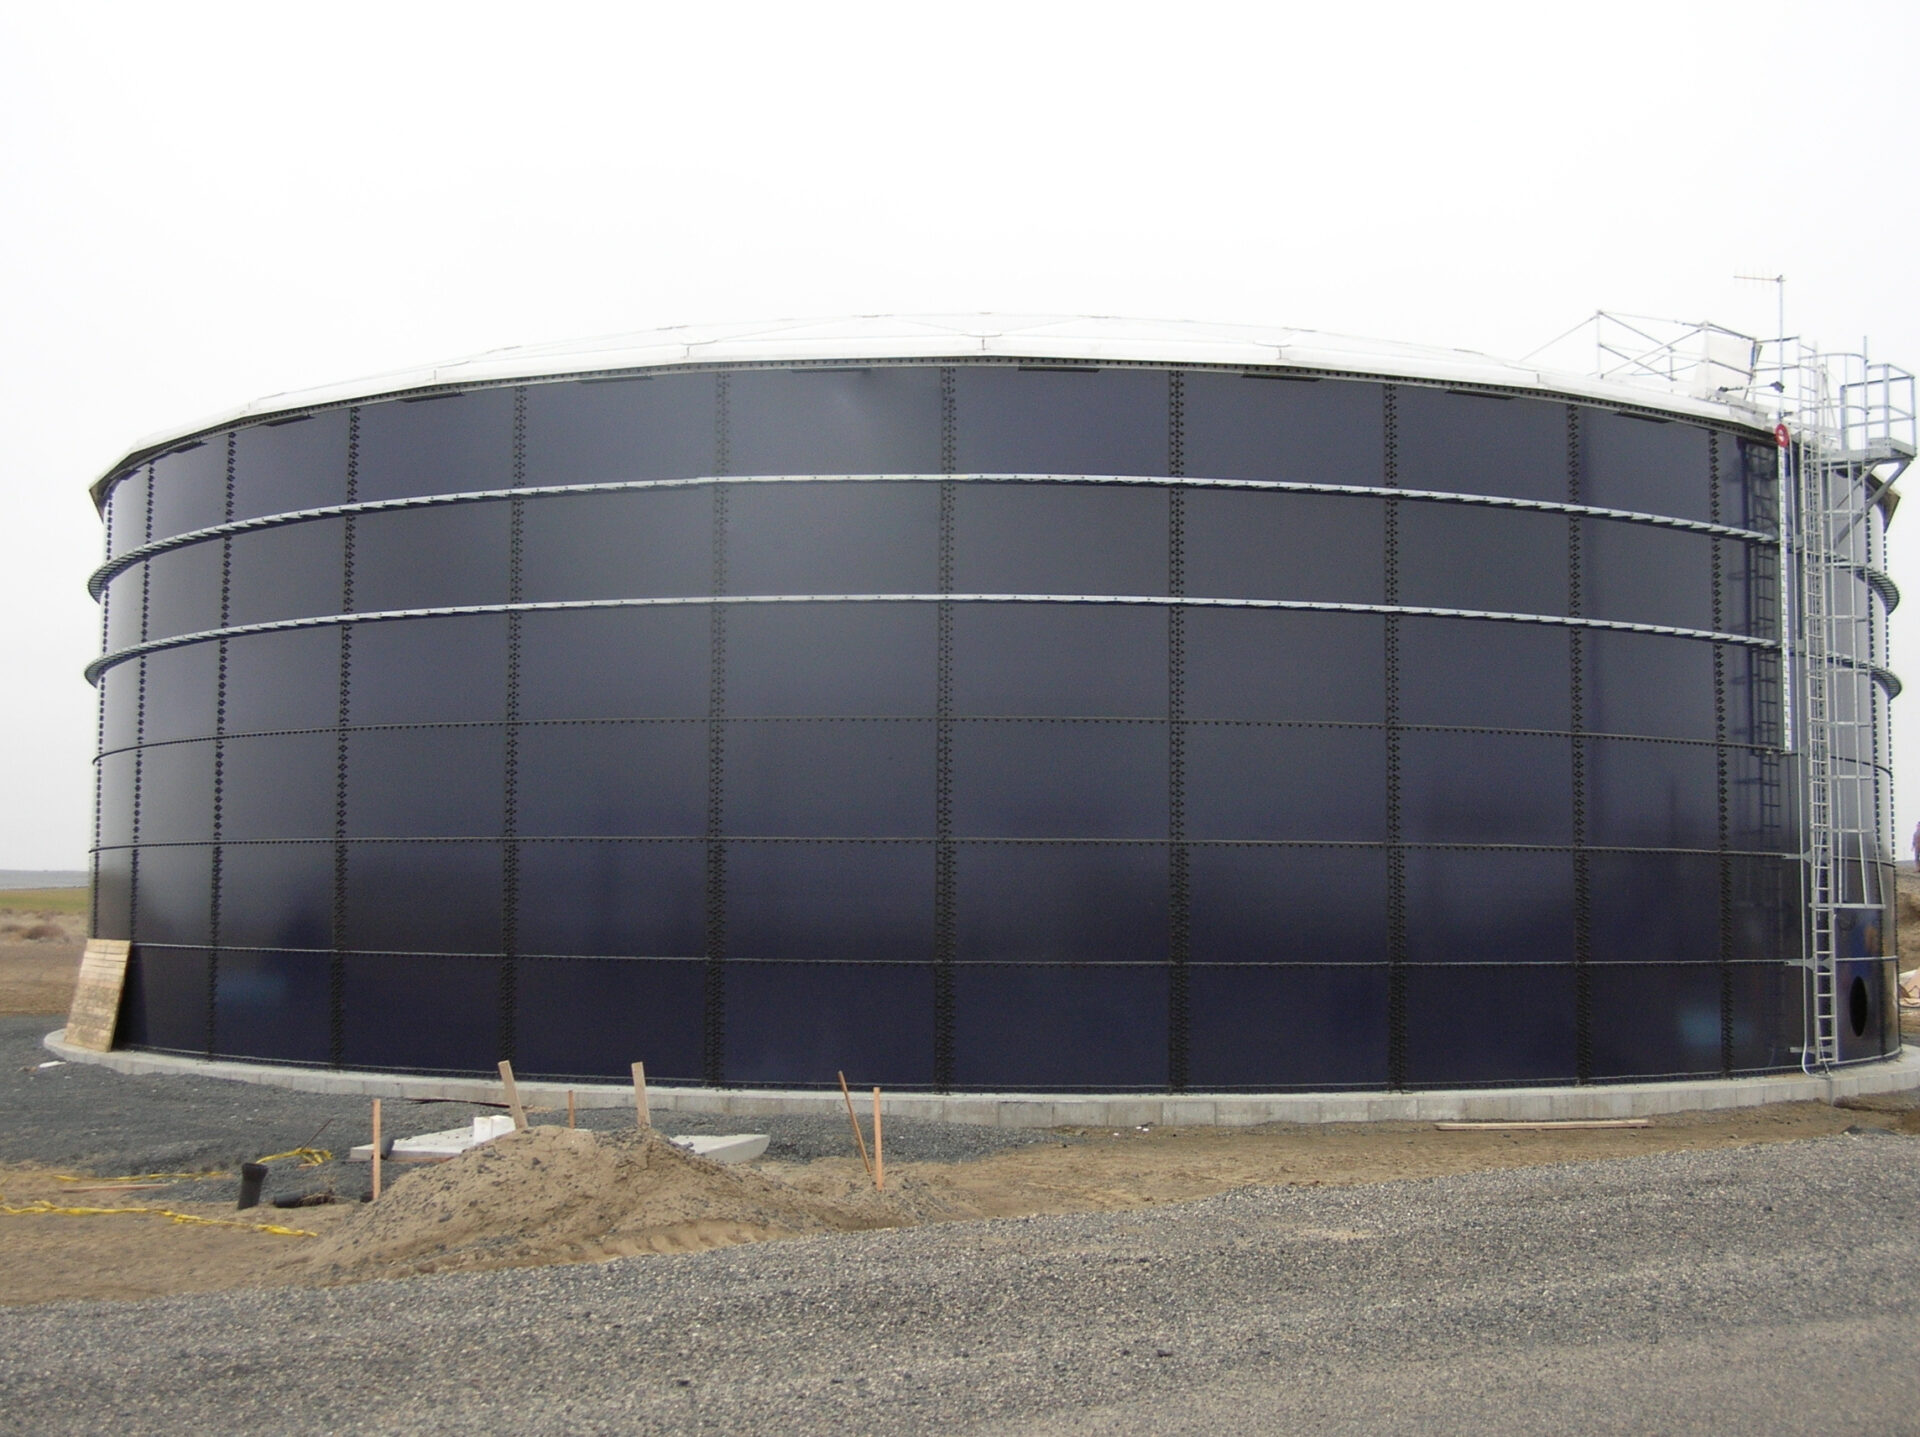 side view of a large water tank